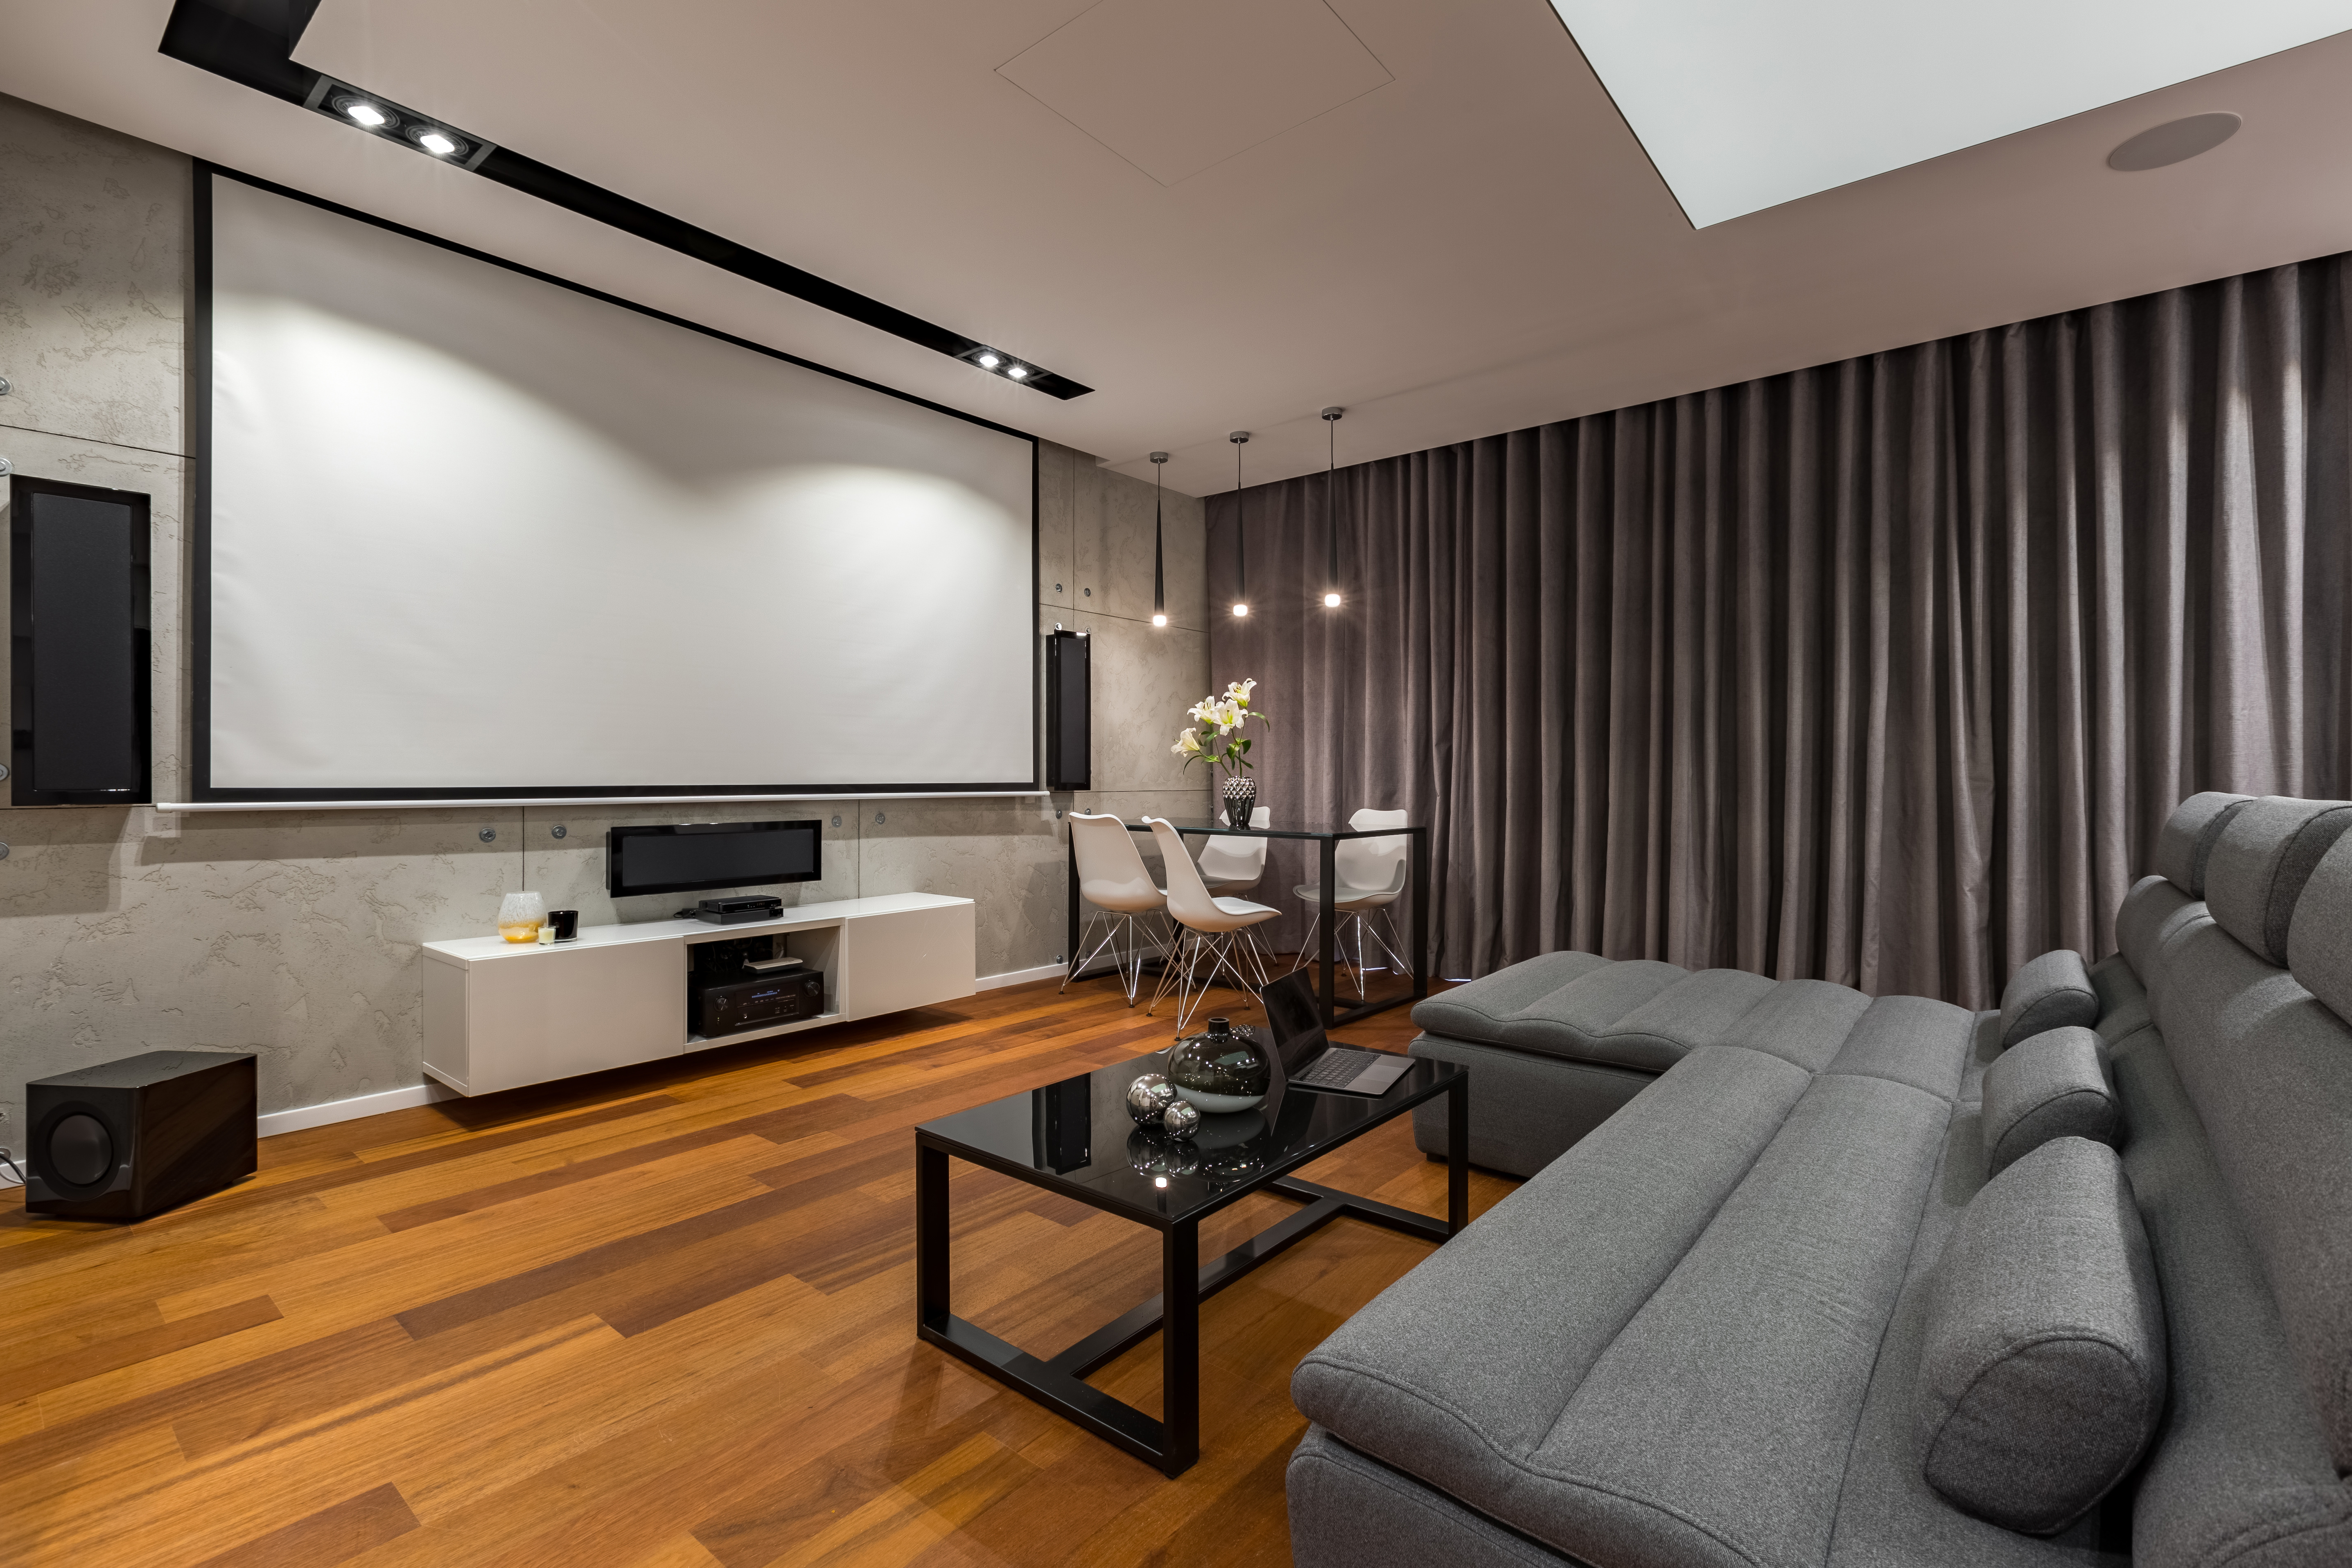 3 inexpensive AV tips that make all the difference